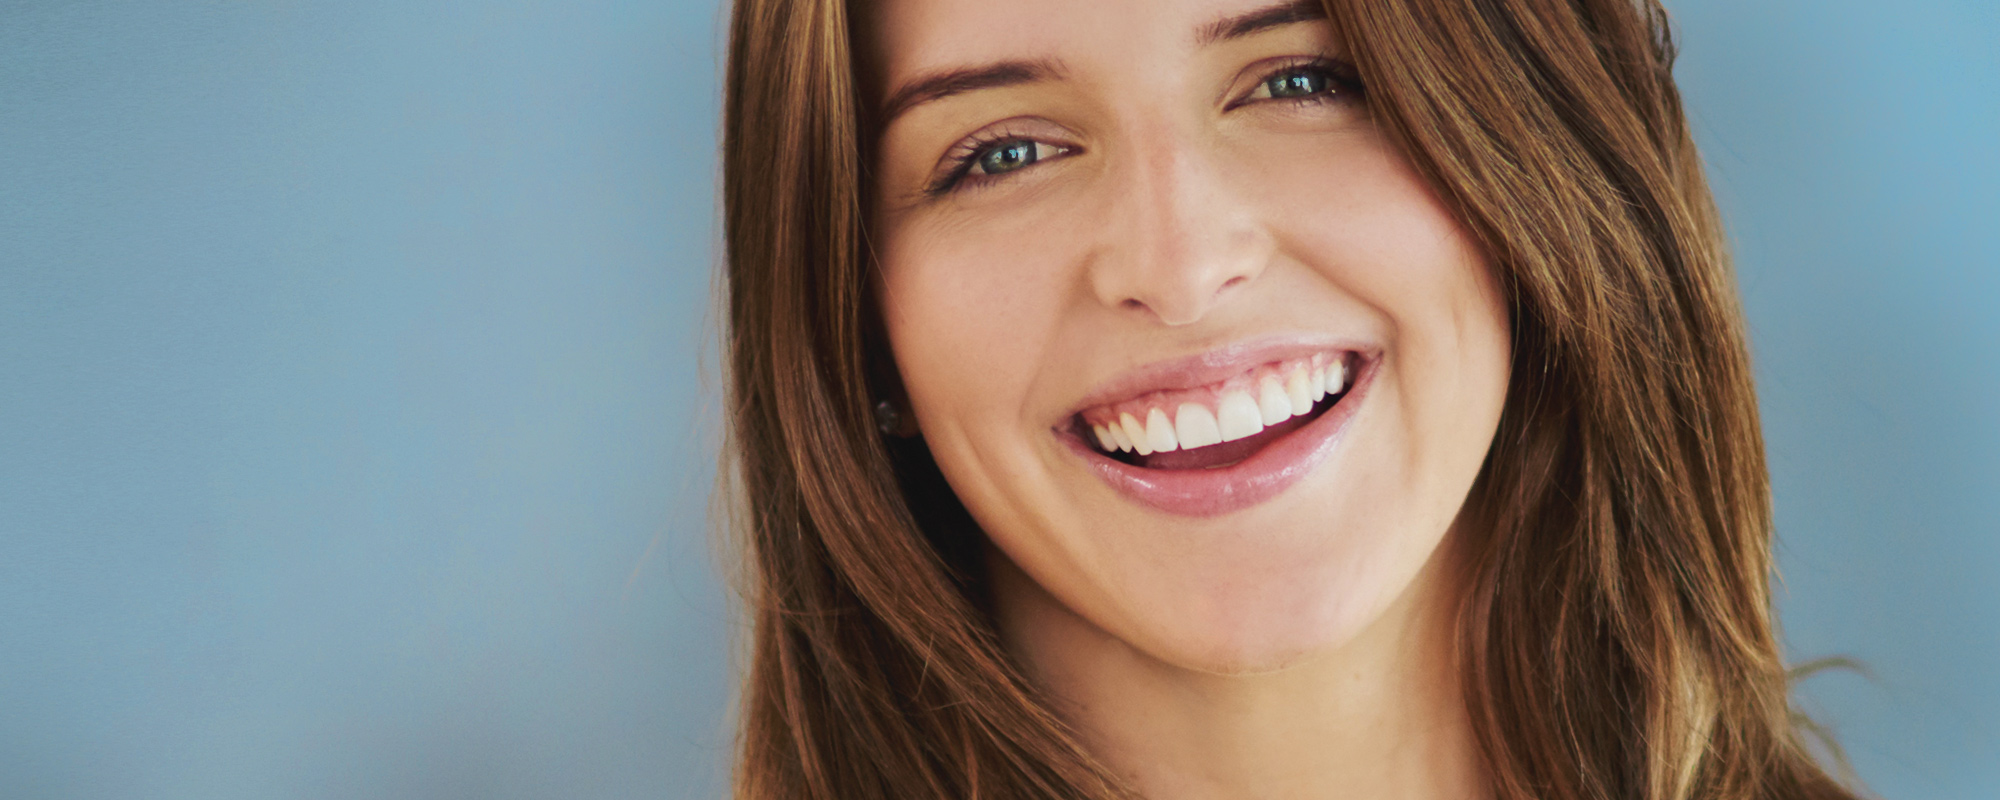 Keeping your </br>teeth healthy and </br>your smile bright.